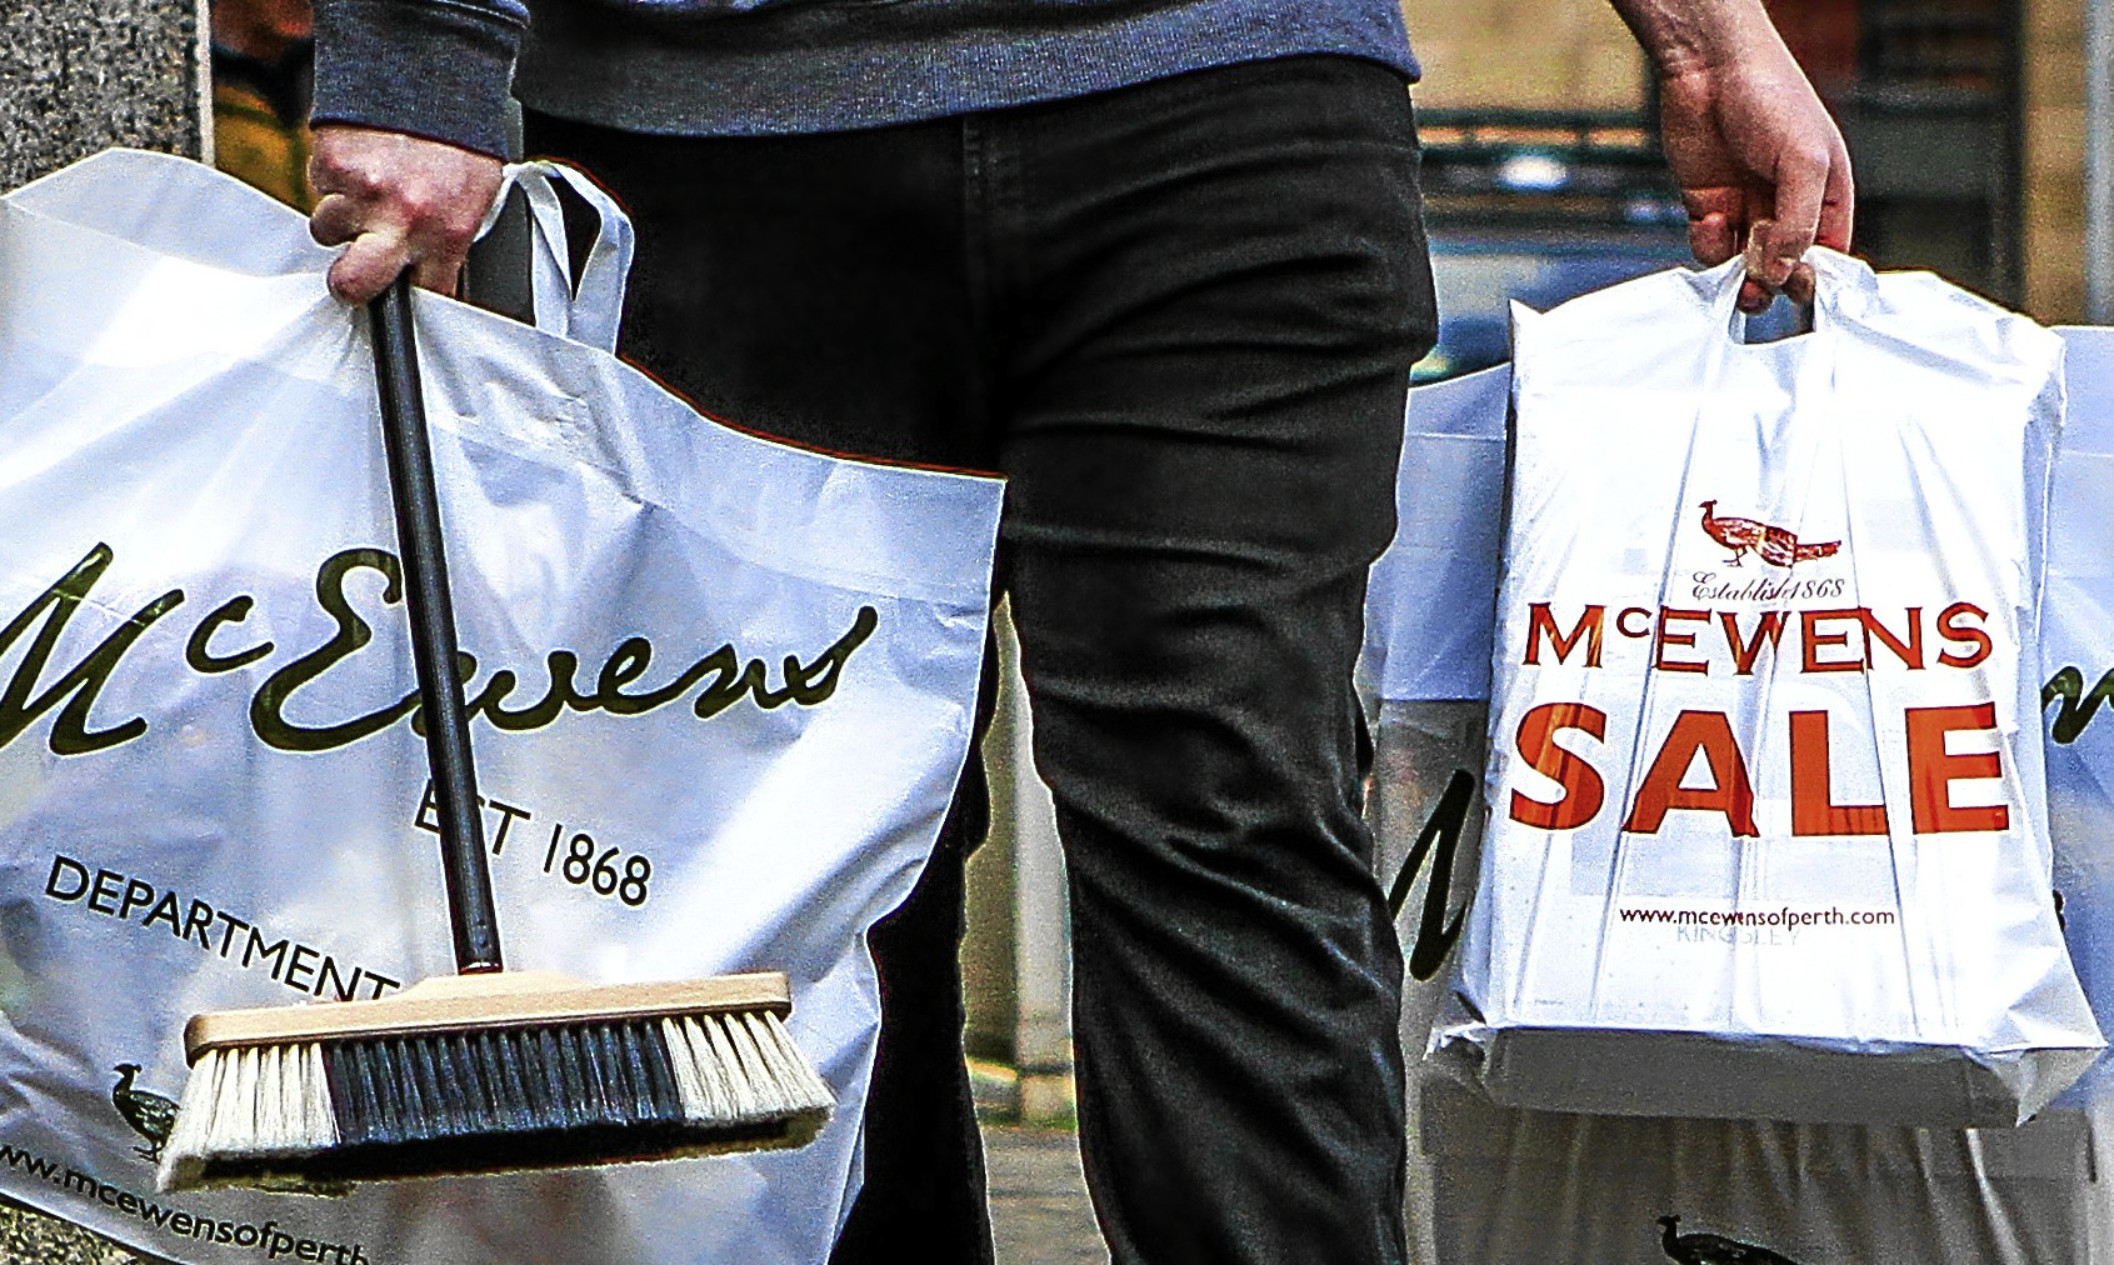 Shopper with sales bags from McEwens of Perth.